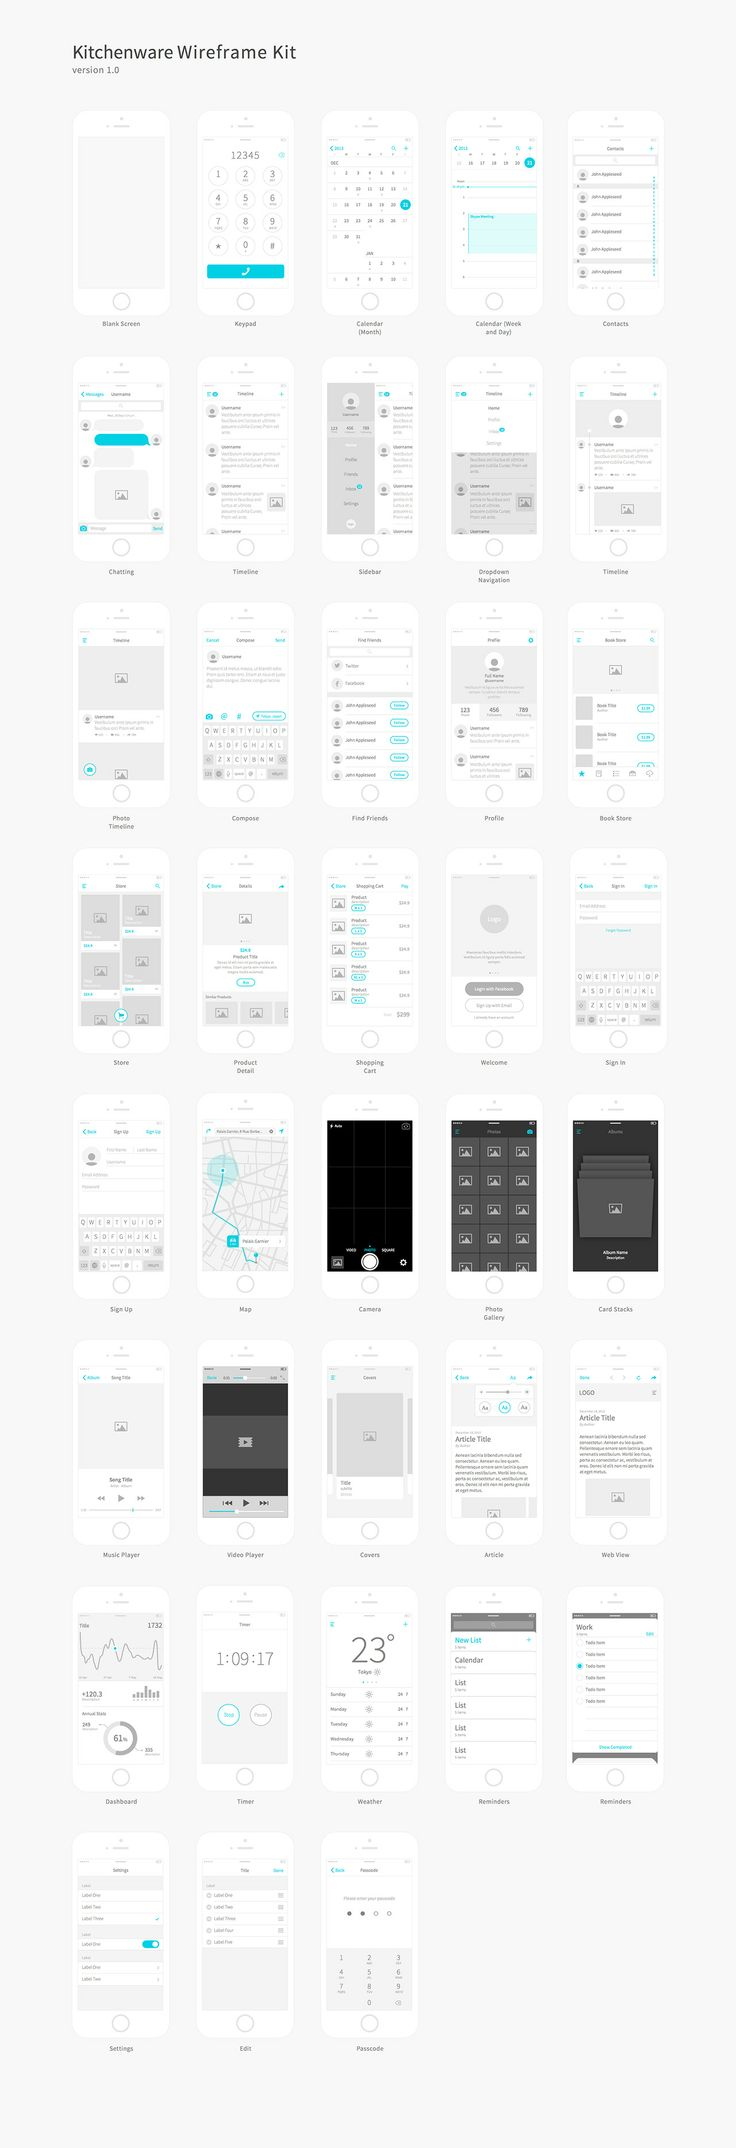 Kitchenware Pro – Wireframe Kit by Neway Lau